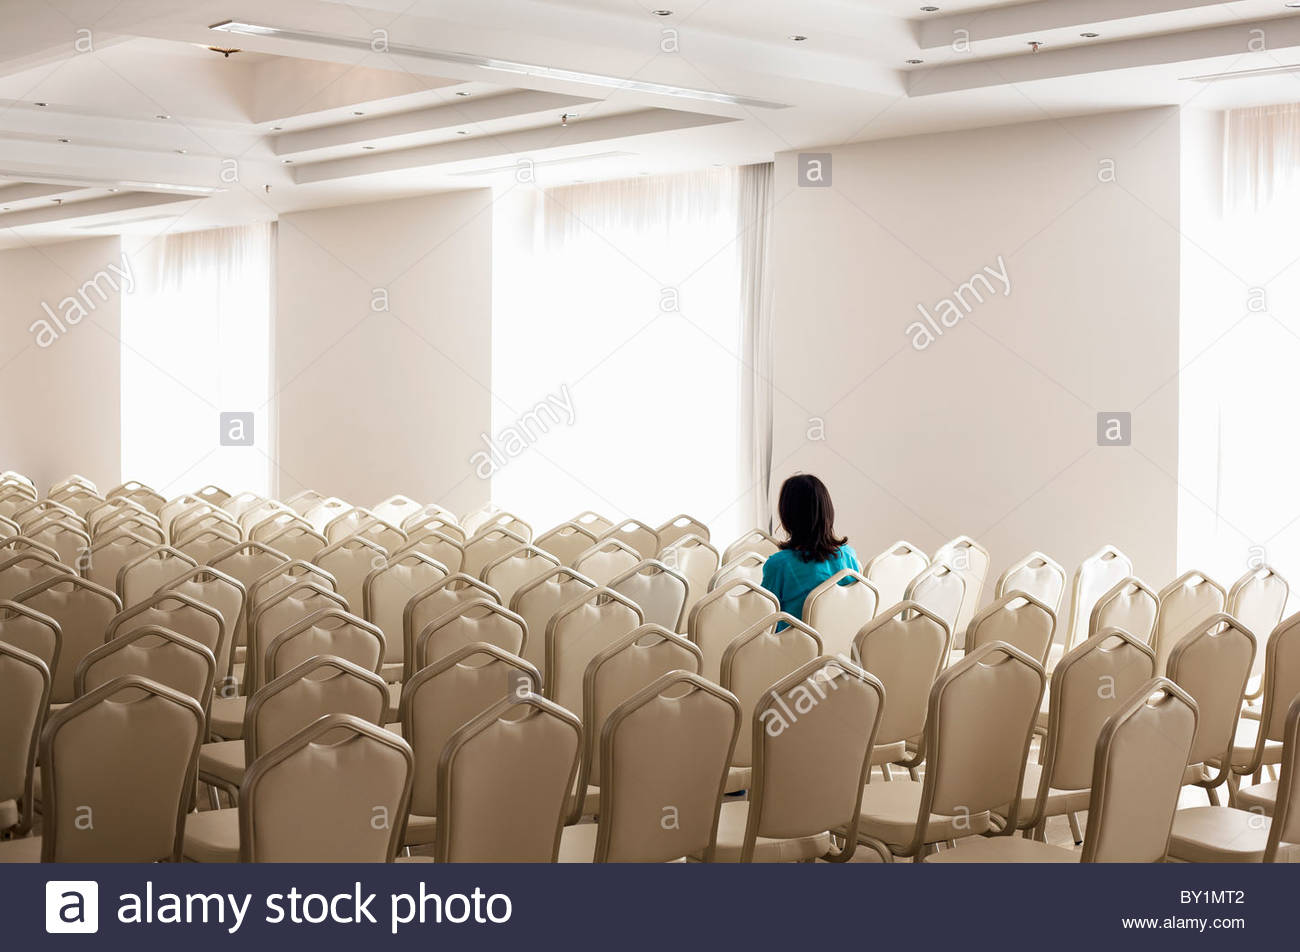 Solitary woman amongst empty chairs - Stock Image